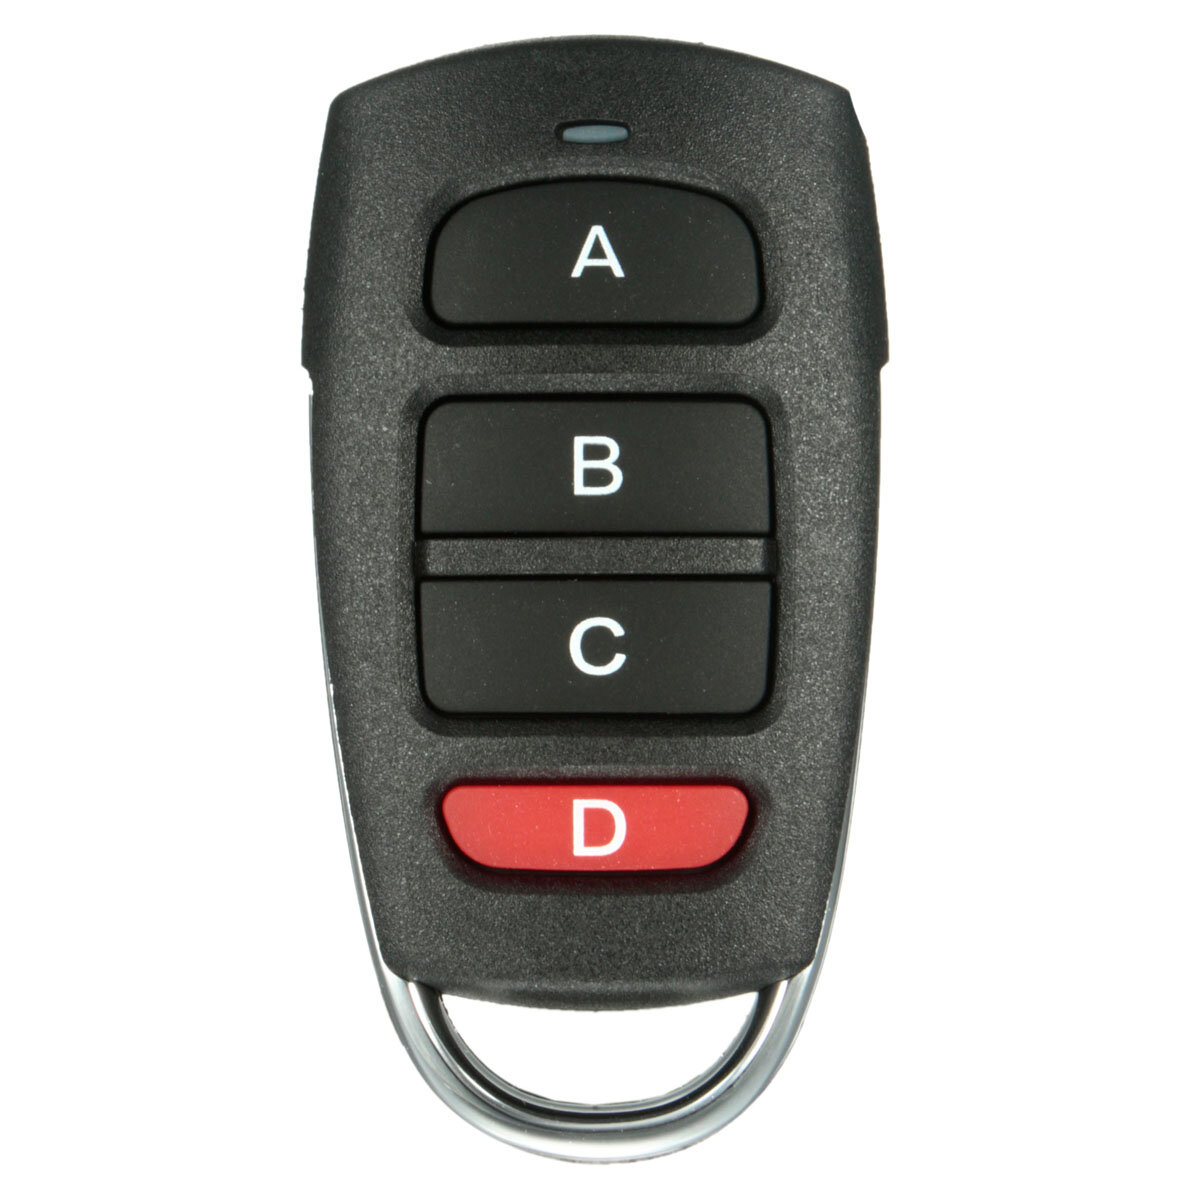 DANIU Universal Cloning Cloner 433mhz Electric Gate Garage Door Remote Control Key Fob